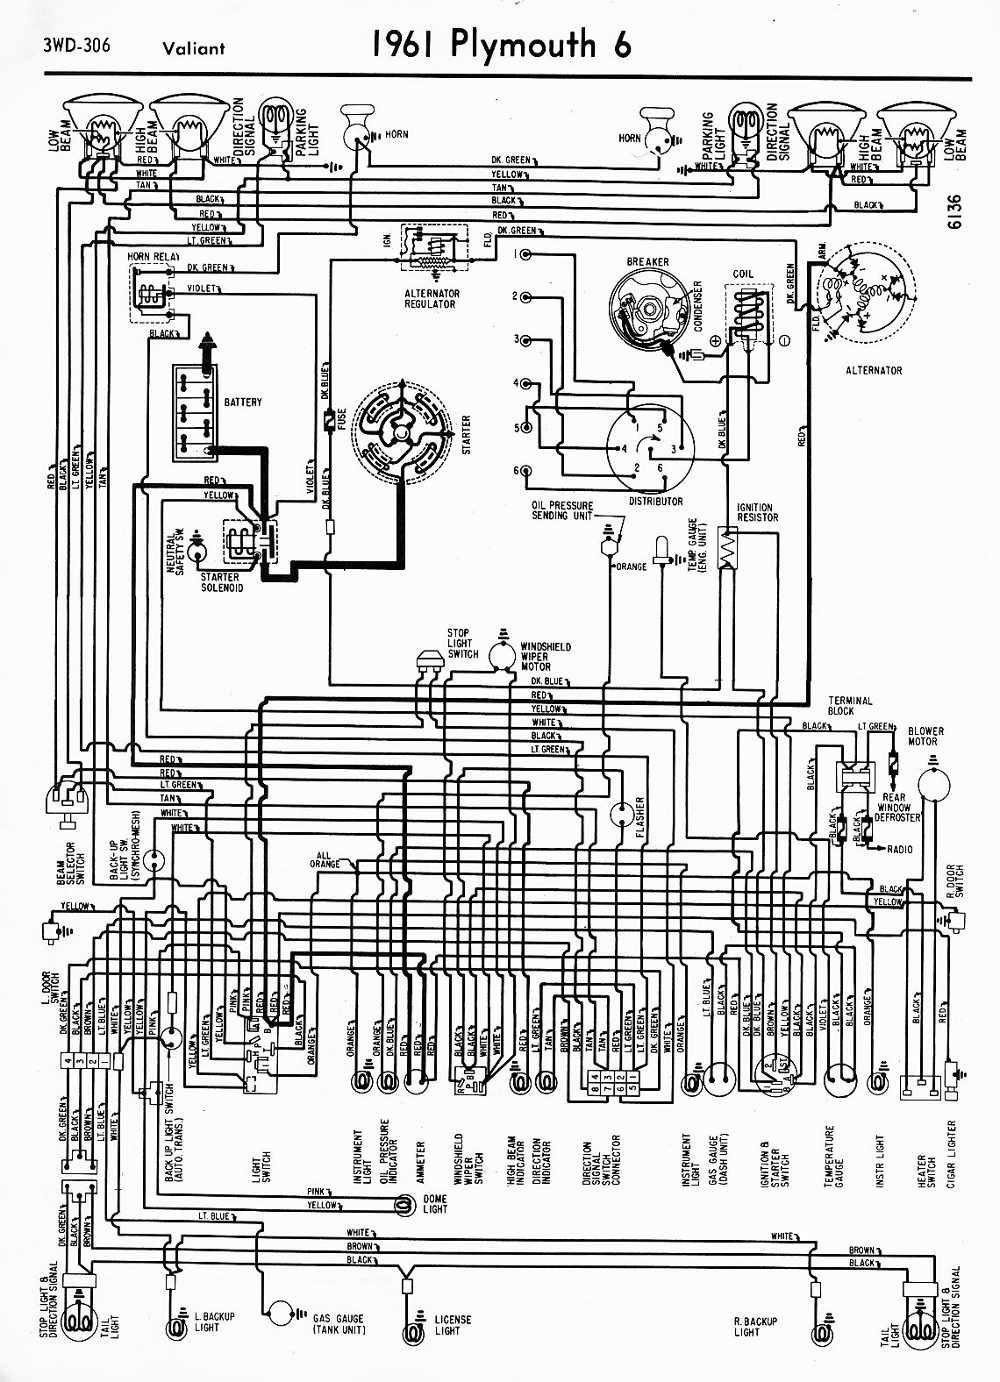 wiring diagram for 65 plymouth 6 data wiring diagrams \u2022 70 cuda wiring-diagram 67 plymouth barracuda wiring diagram house wiring diagram symbols u2022 rh mollusksurfshopnyc com 1934 chrysler positive ground wiring diagram 1939 plymouth